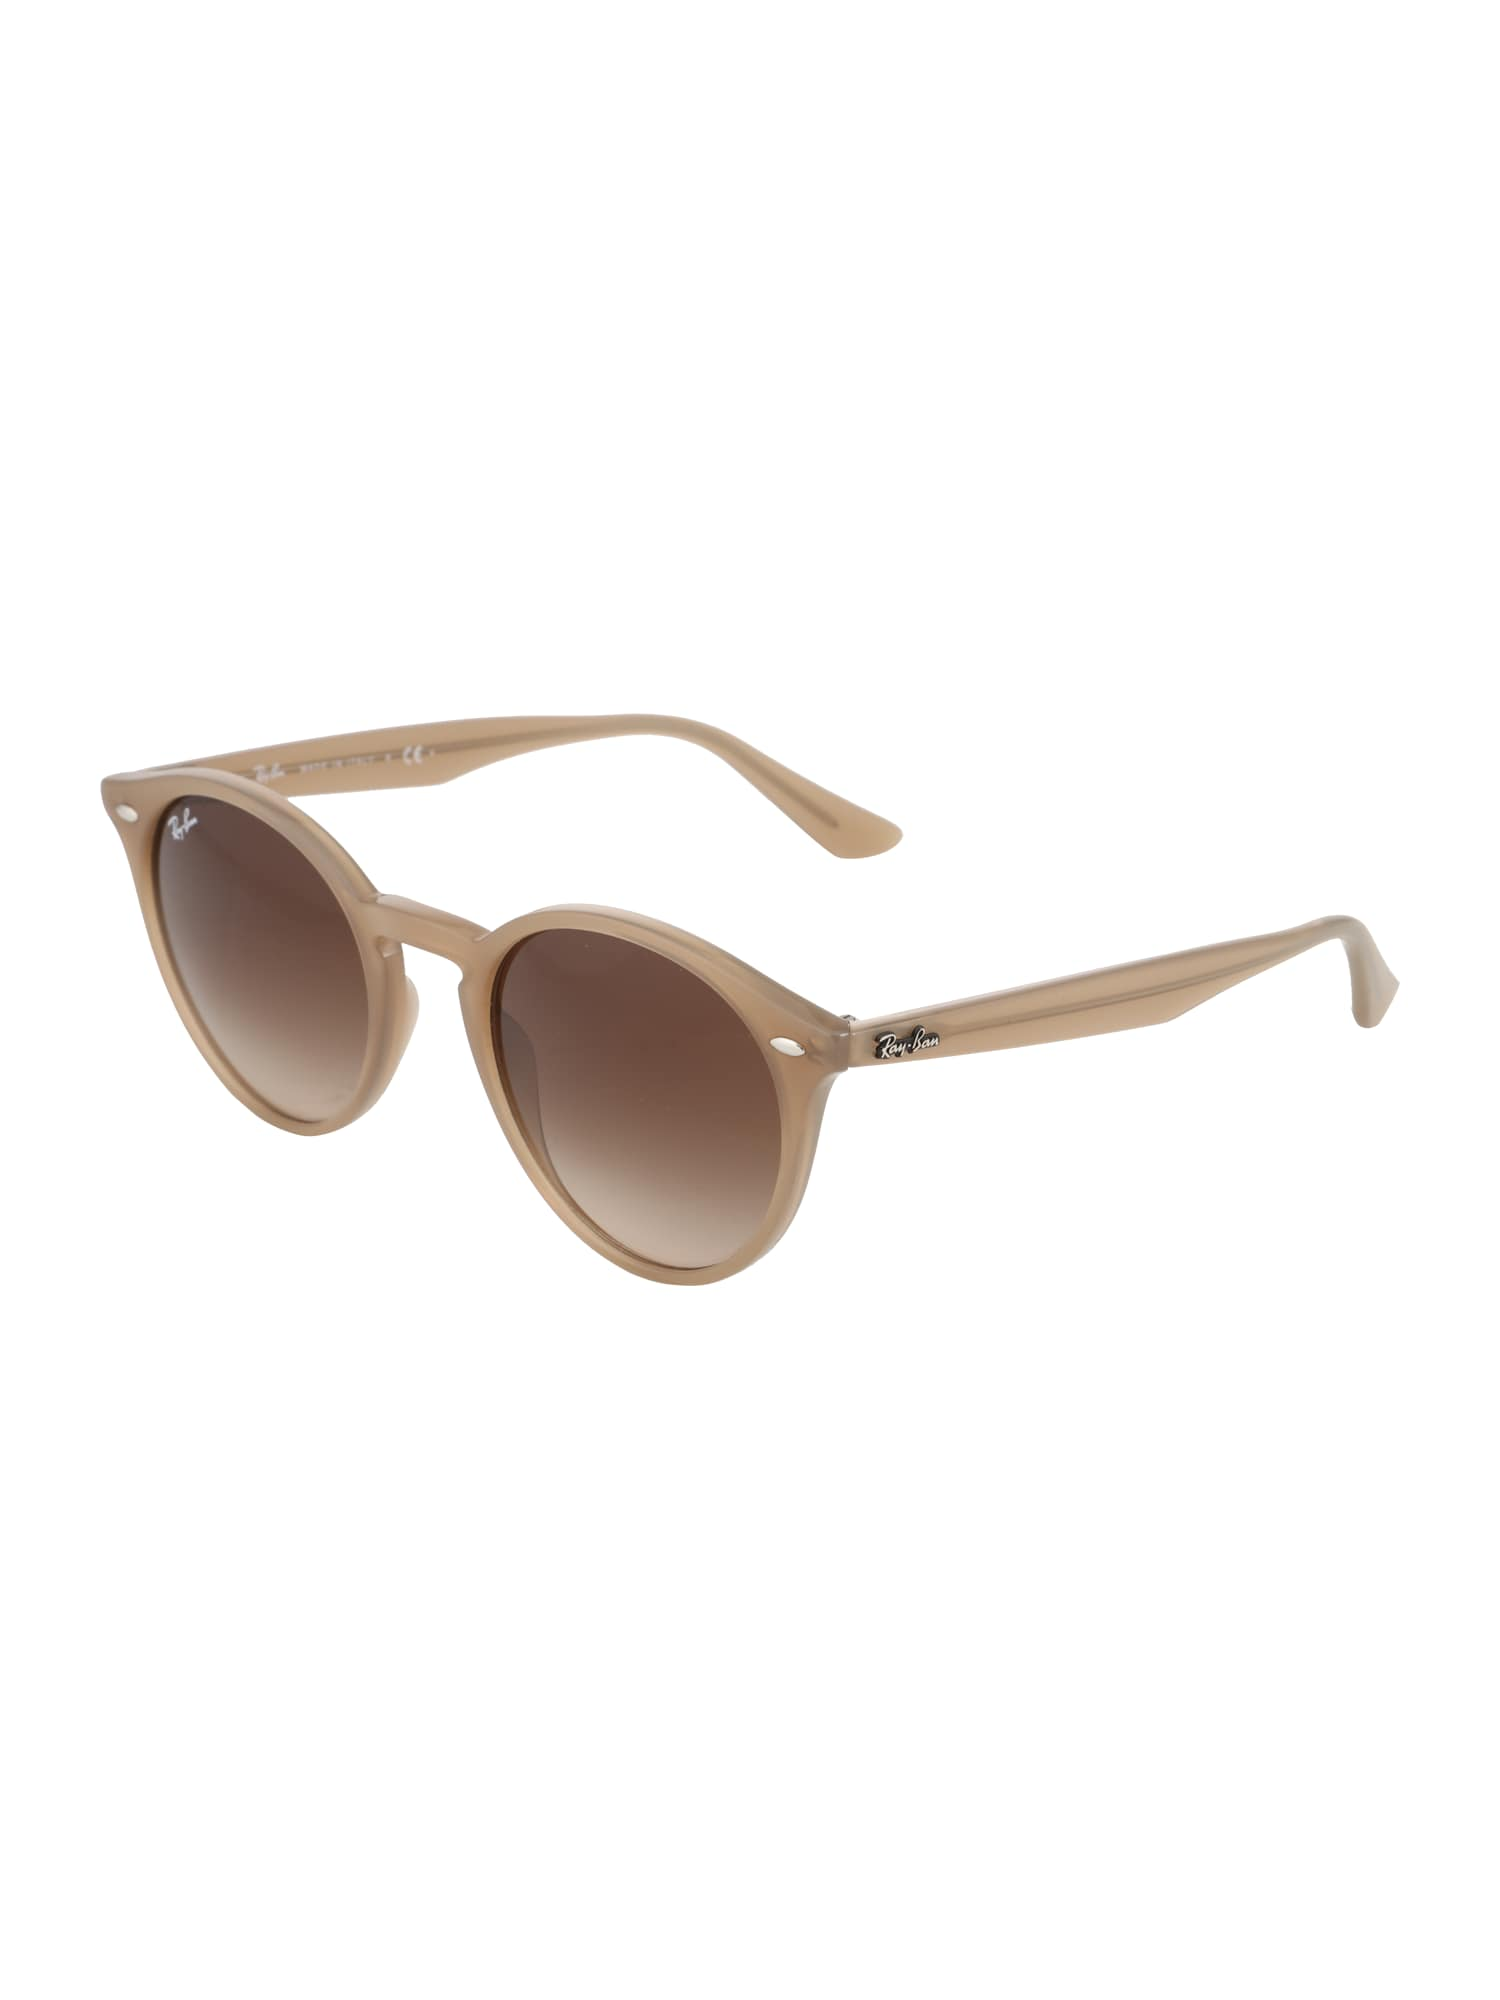 Ray-Ban RB2180 616613 - zonnebril - Turtledove/Brown Gradient - 51mm